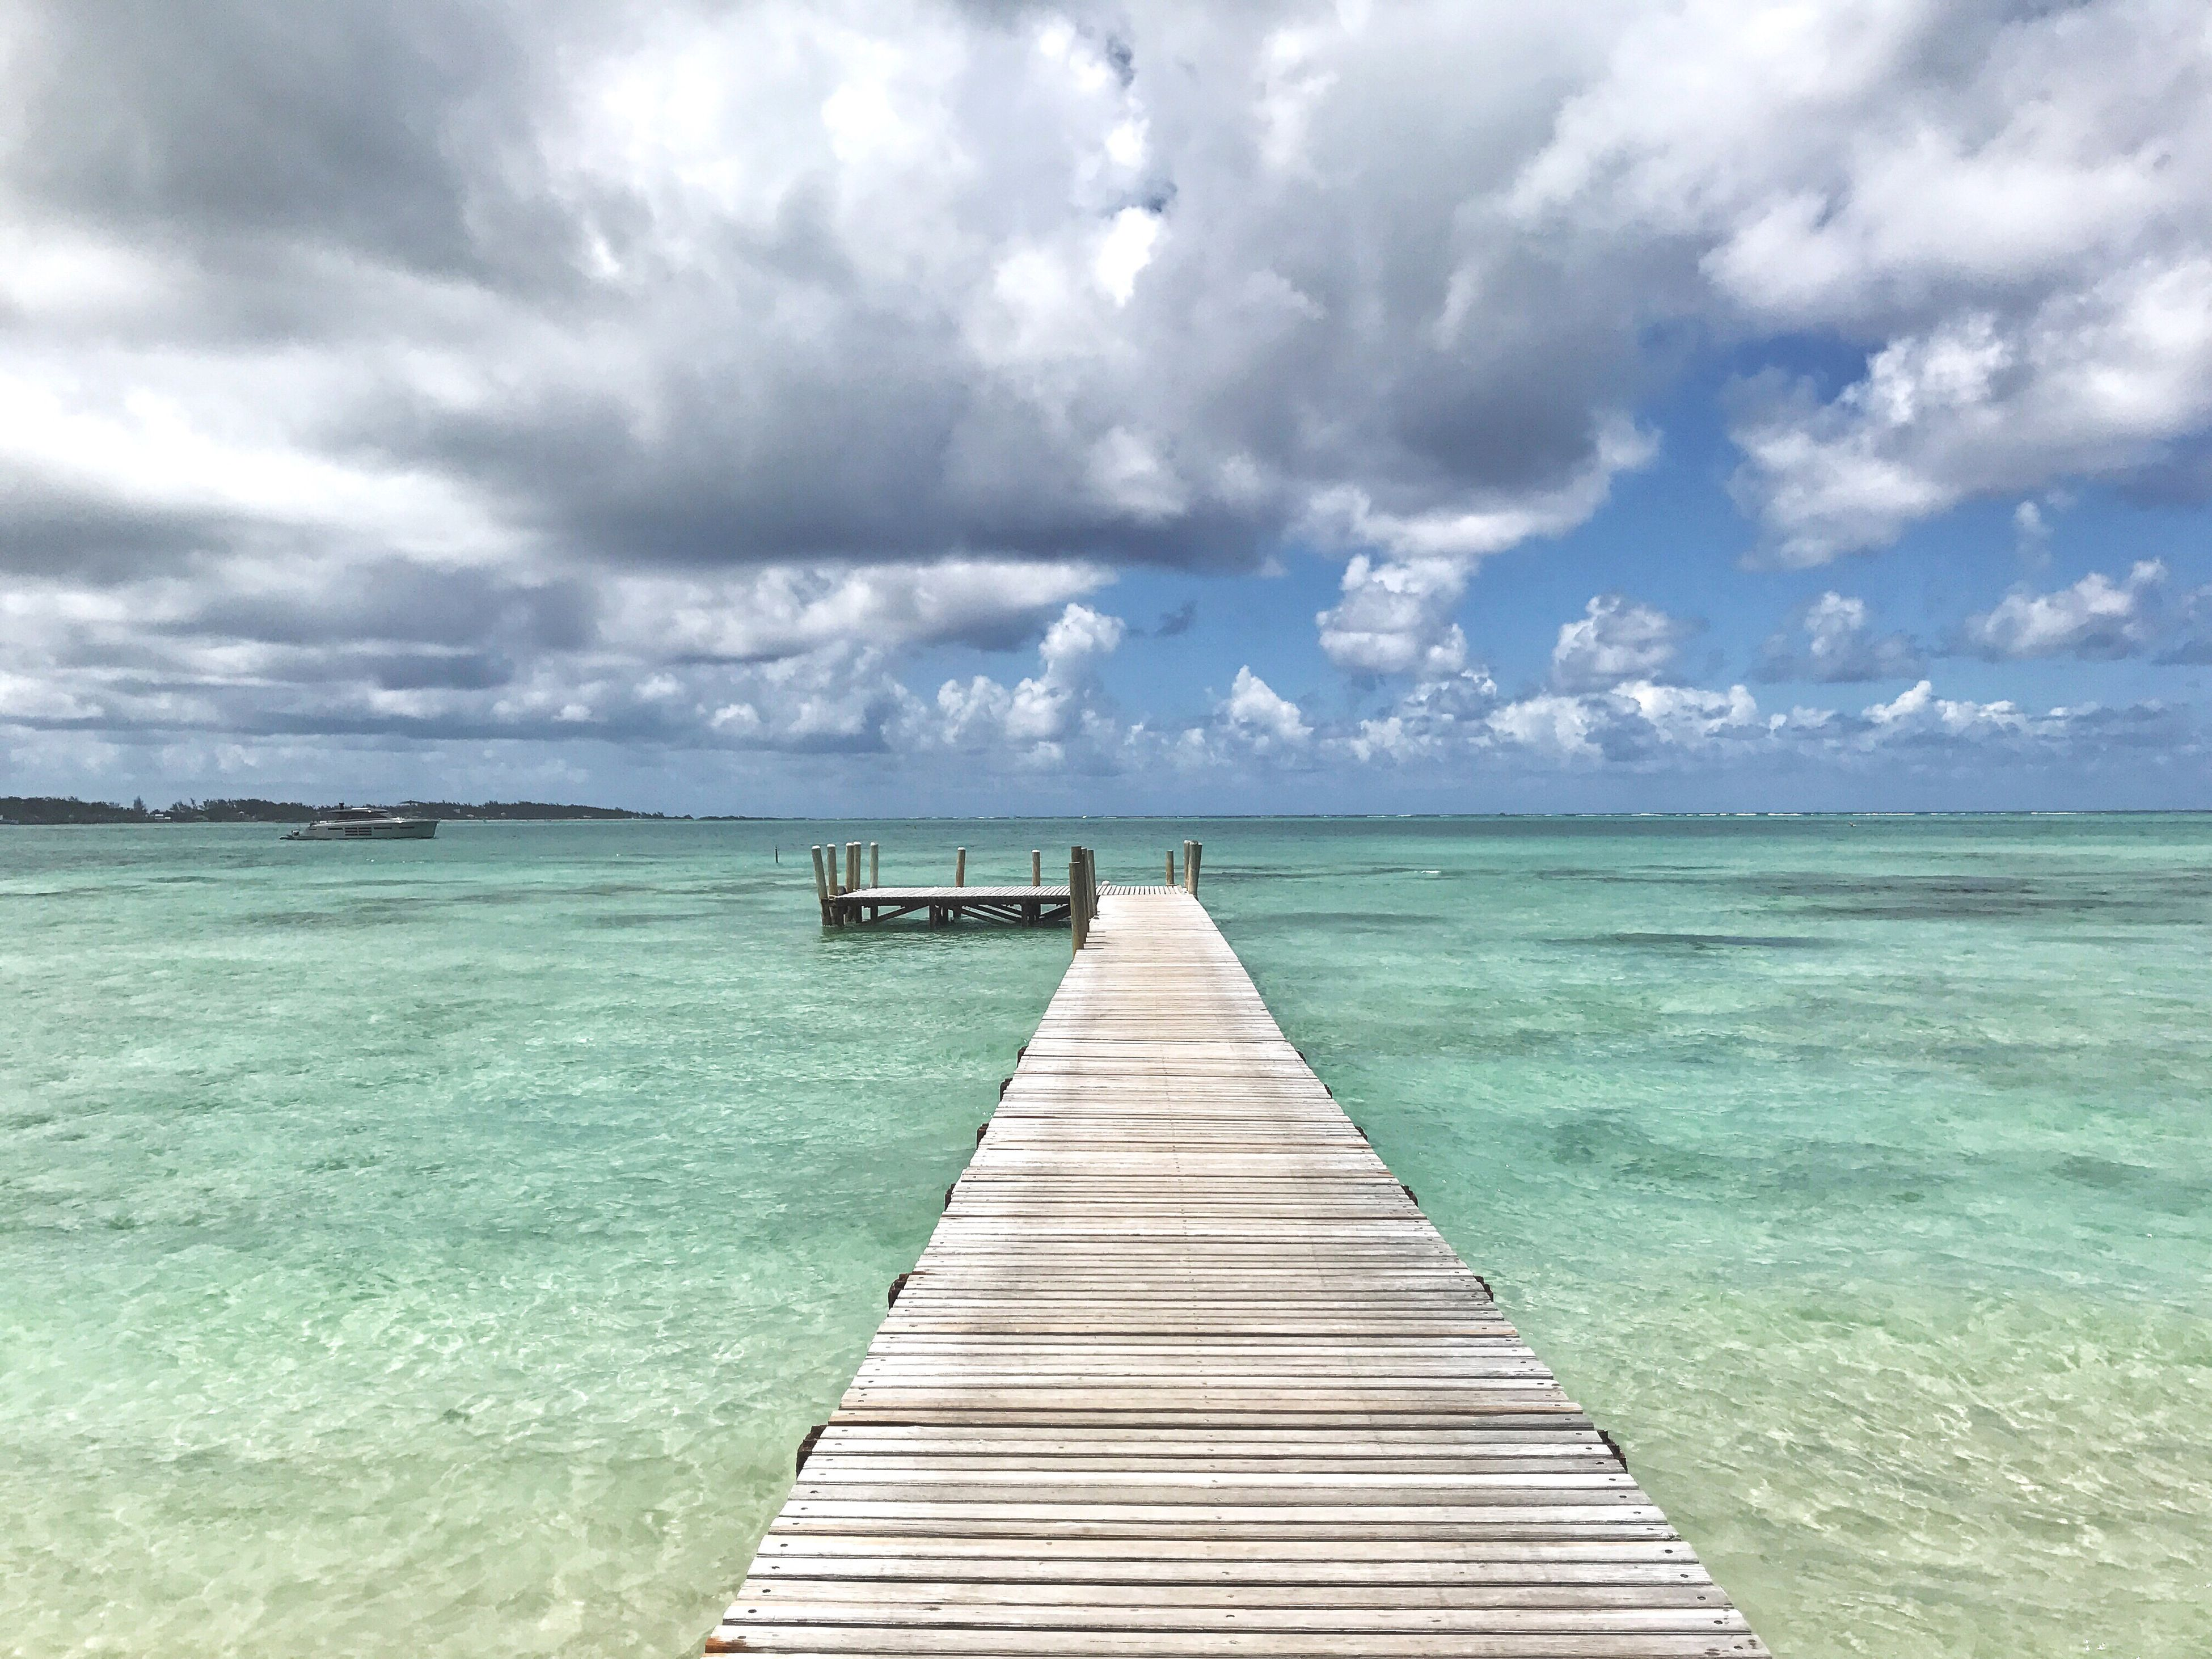 sea, water, horizon over water, pier, nature, beach, cloud - sky, sky, wood - material, boardwalk, no people, outdoors, tranquility, beauty in nature, scenics, day